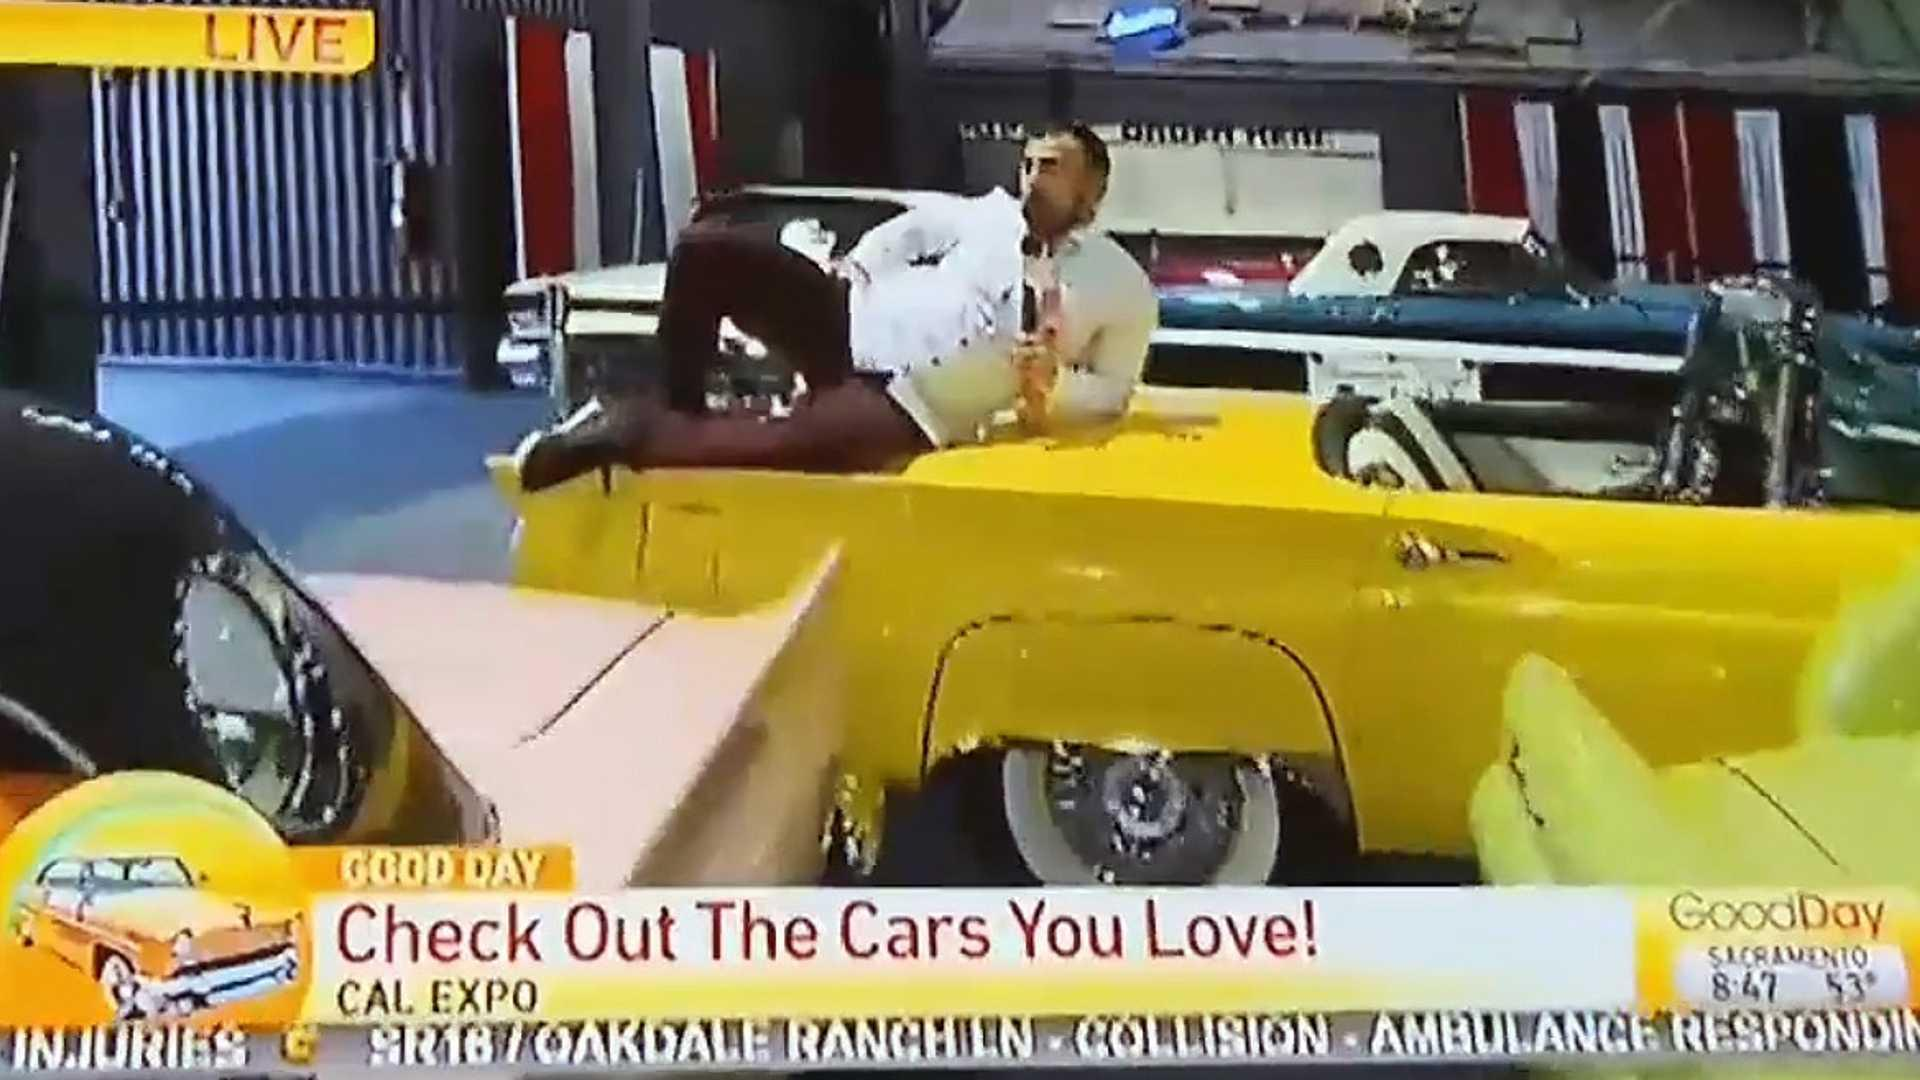 Ca reporter fired after damaging cars at sacramento auto show